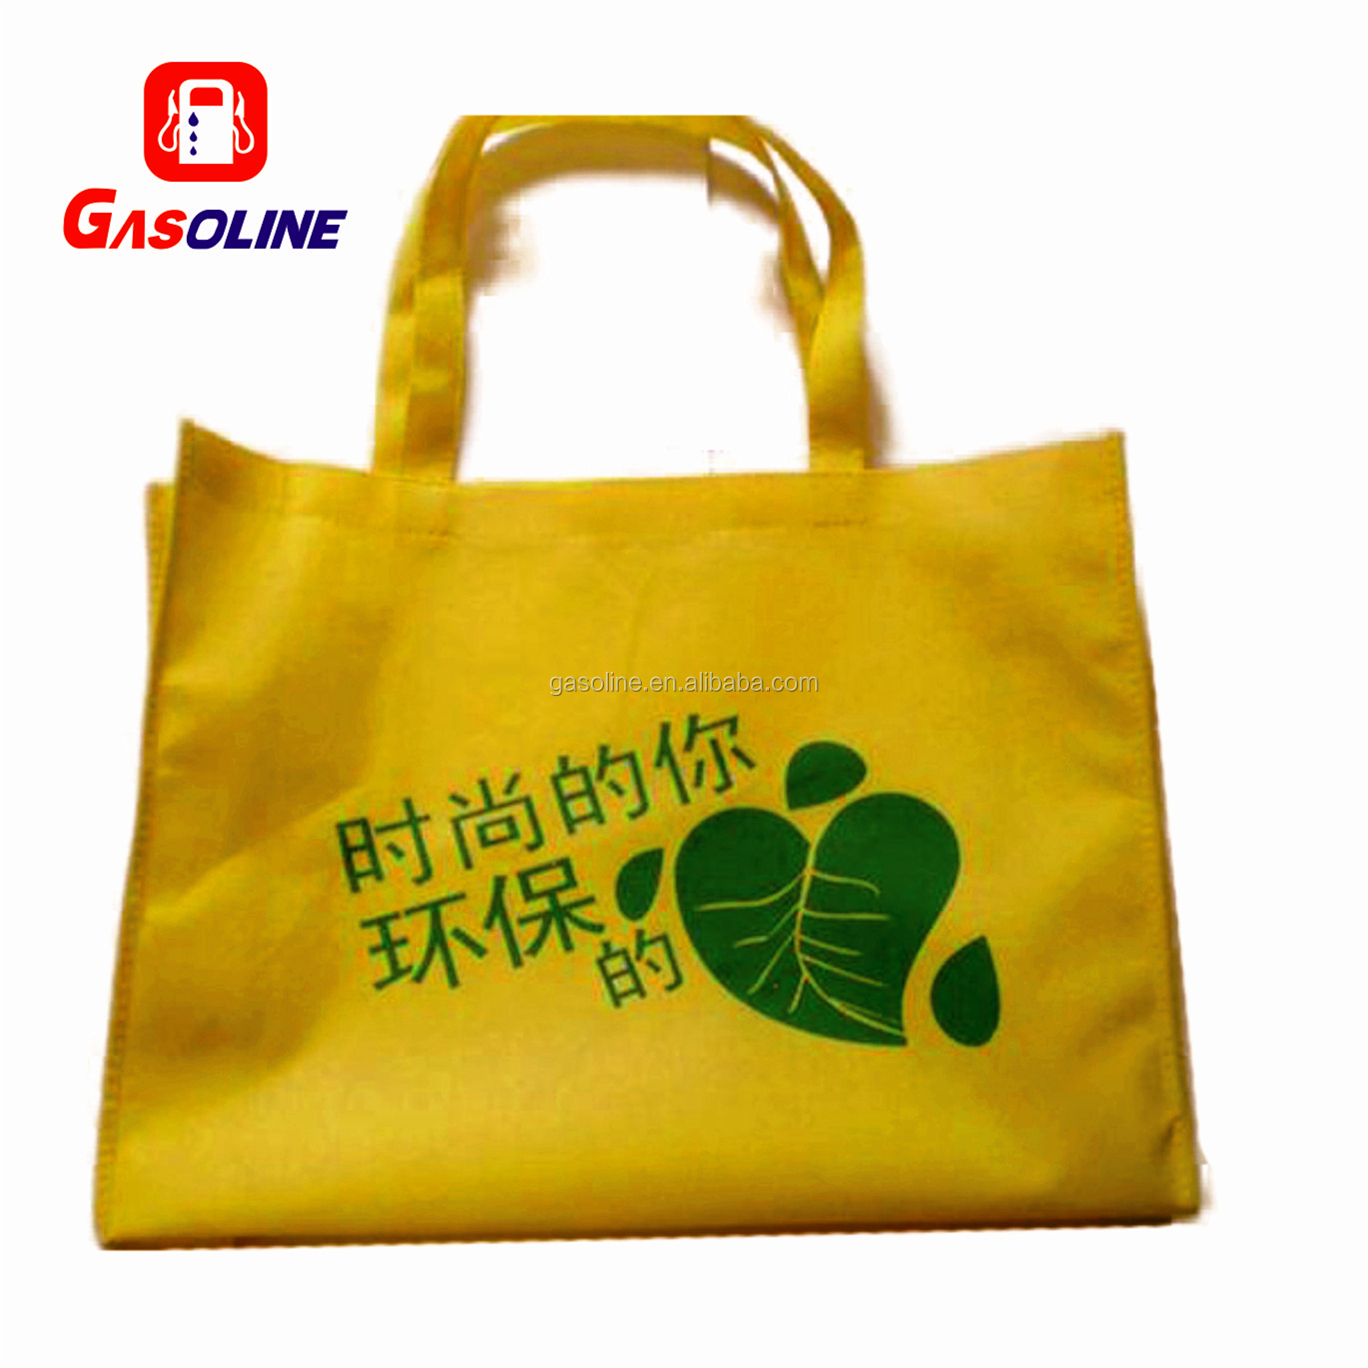 Decorative best price eco-friendly non woven 6 bottle wine tote bag